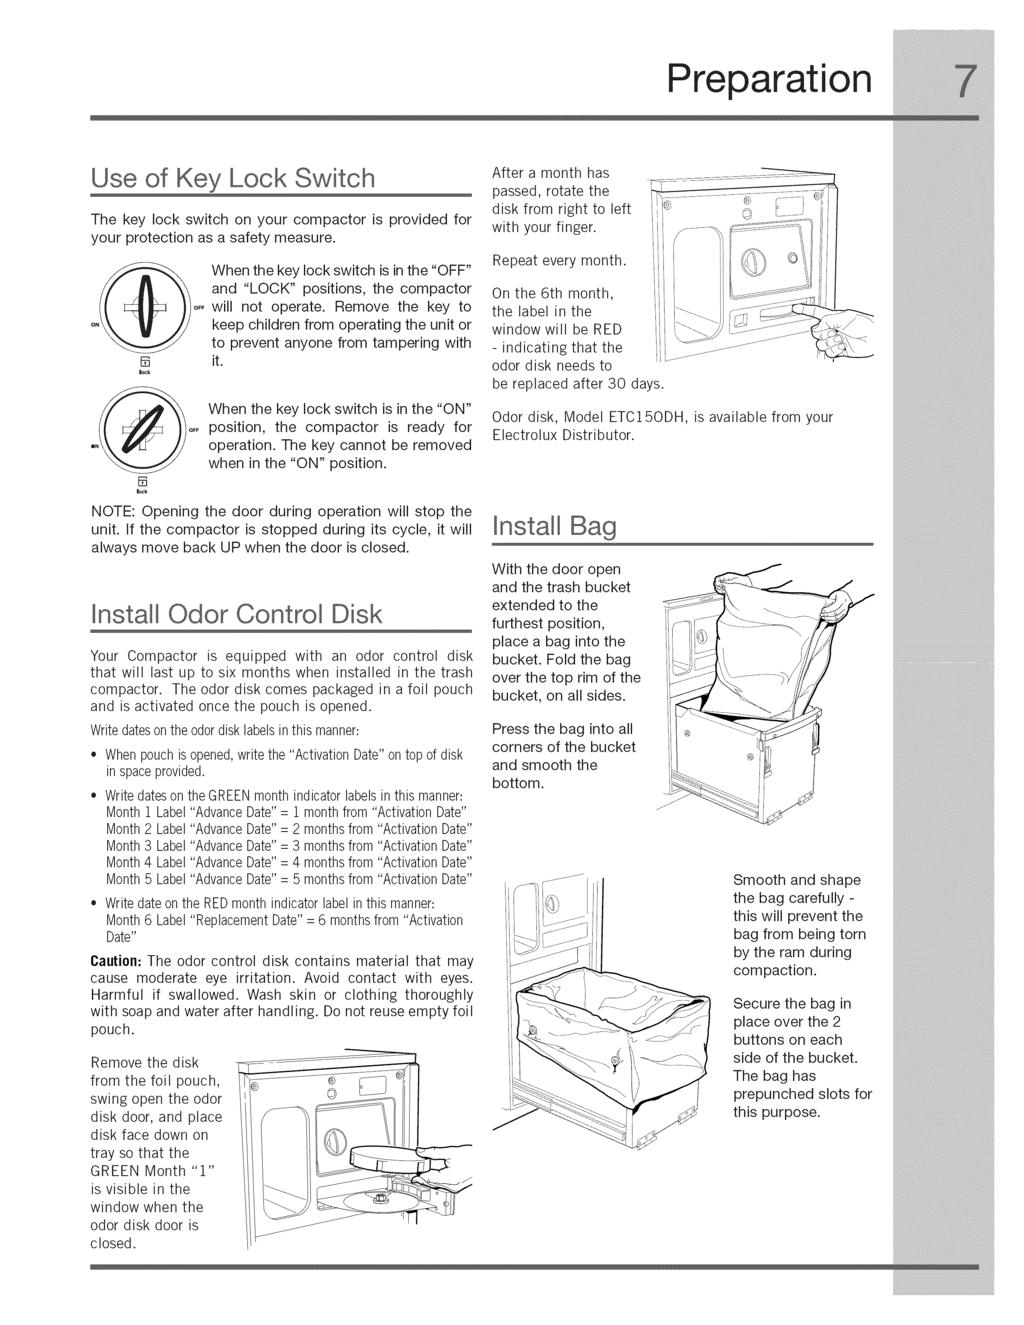 Preparation Use of Key Lock Switch The key lock switch on your compactor is provided for your protection as a safety measure.